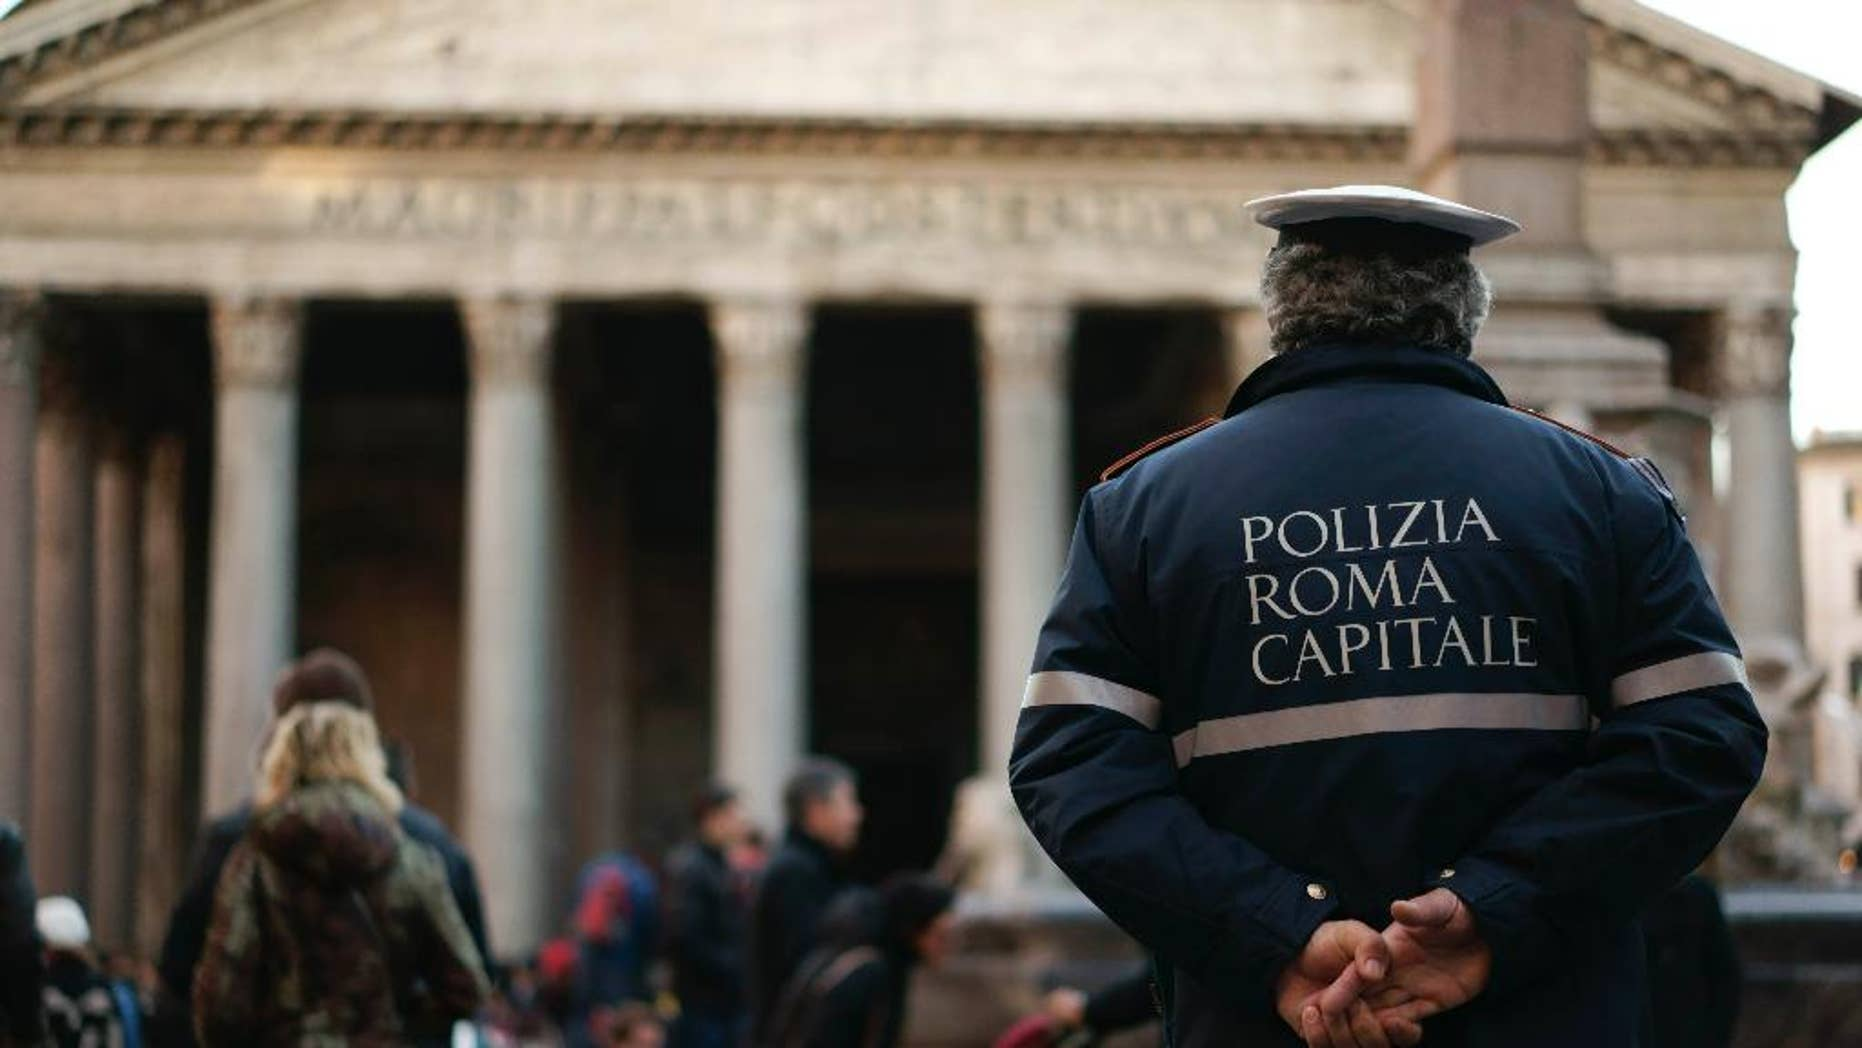 An Italian municipal policeman stands in front of Rome's Pantheon in Rome, Monday, Jan. 5, 2015. Italian government has sent in inspectors to Rome after about 85 percent of the officer called in sick on New Year's Eve. (AP Photo/Andrew Medichini)